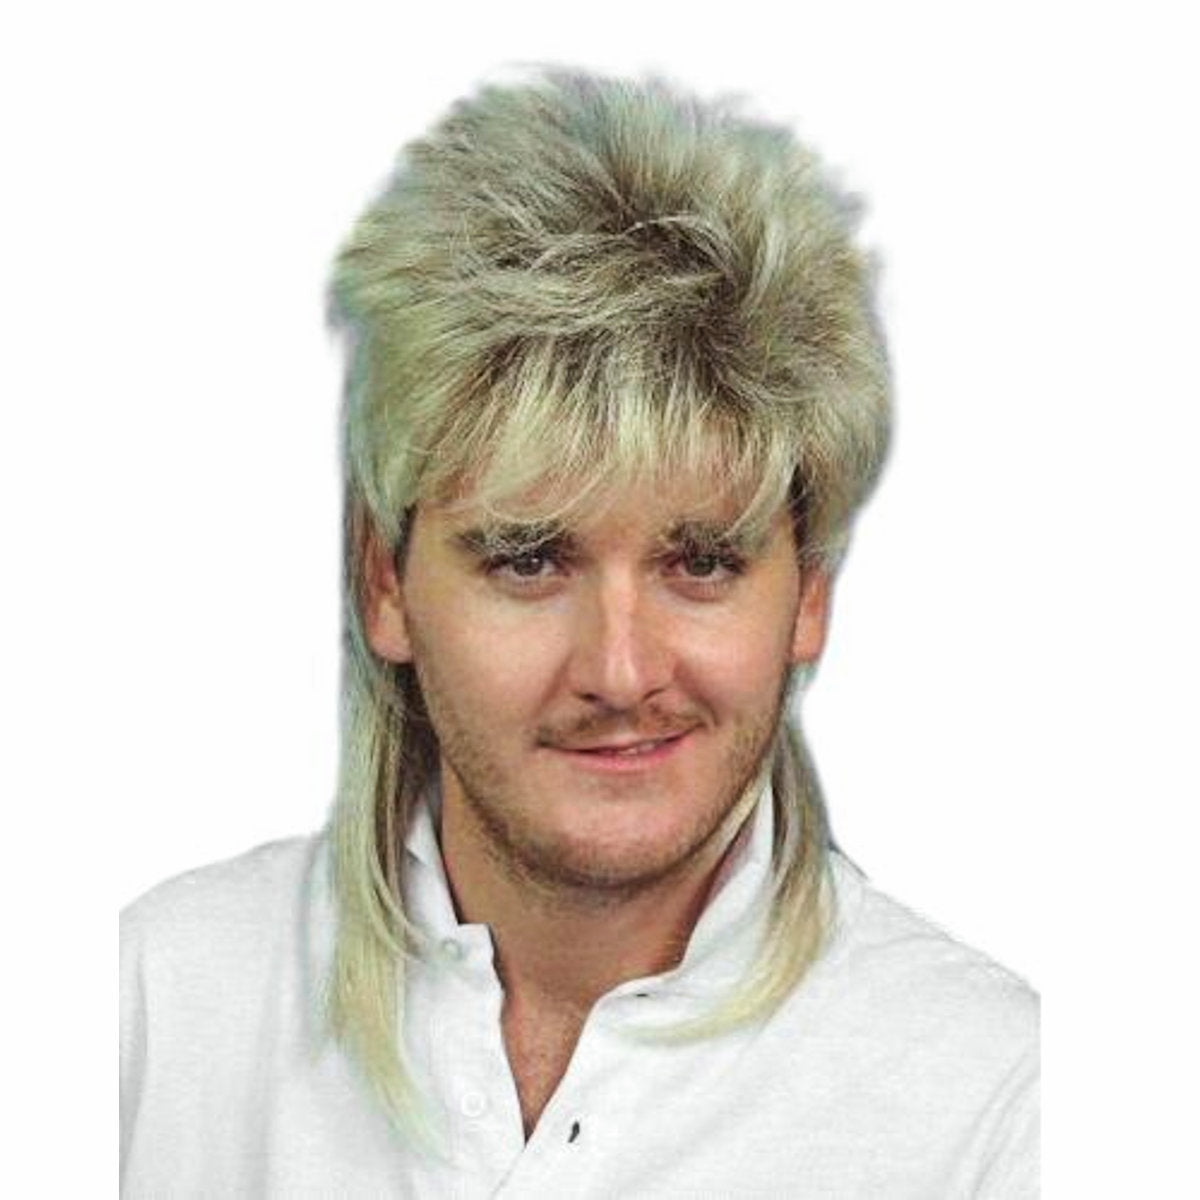 Mullet Wig Two Tone Blonde & Brown 70's 80's Bogan Men's Fancy Dress Costume Wig